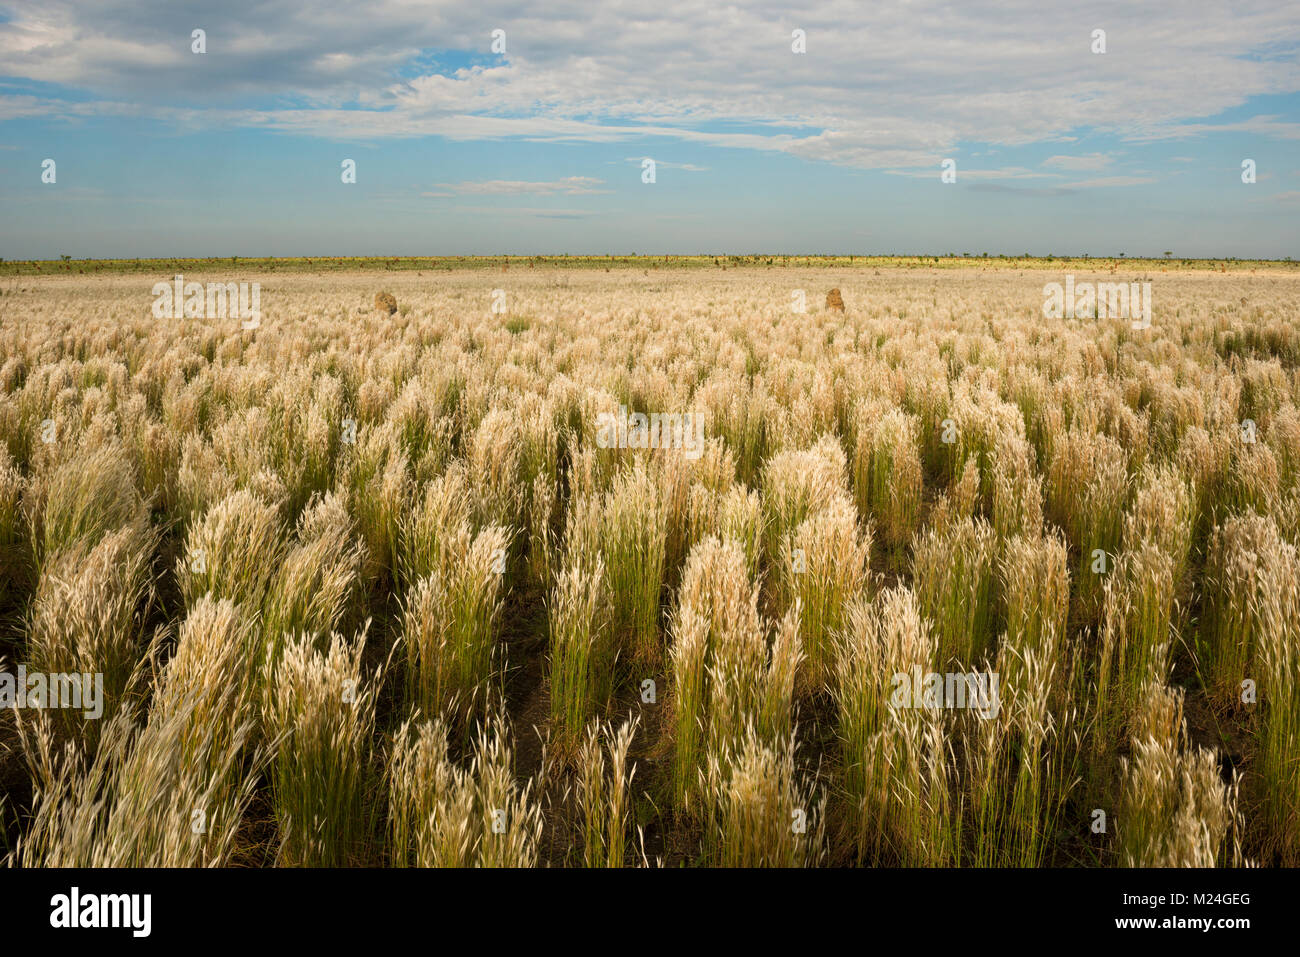 Open grass fields at Emas National Park, GO, Brazil - Stock Image